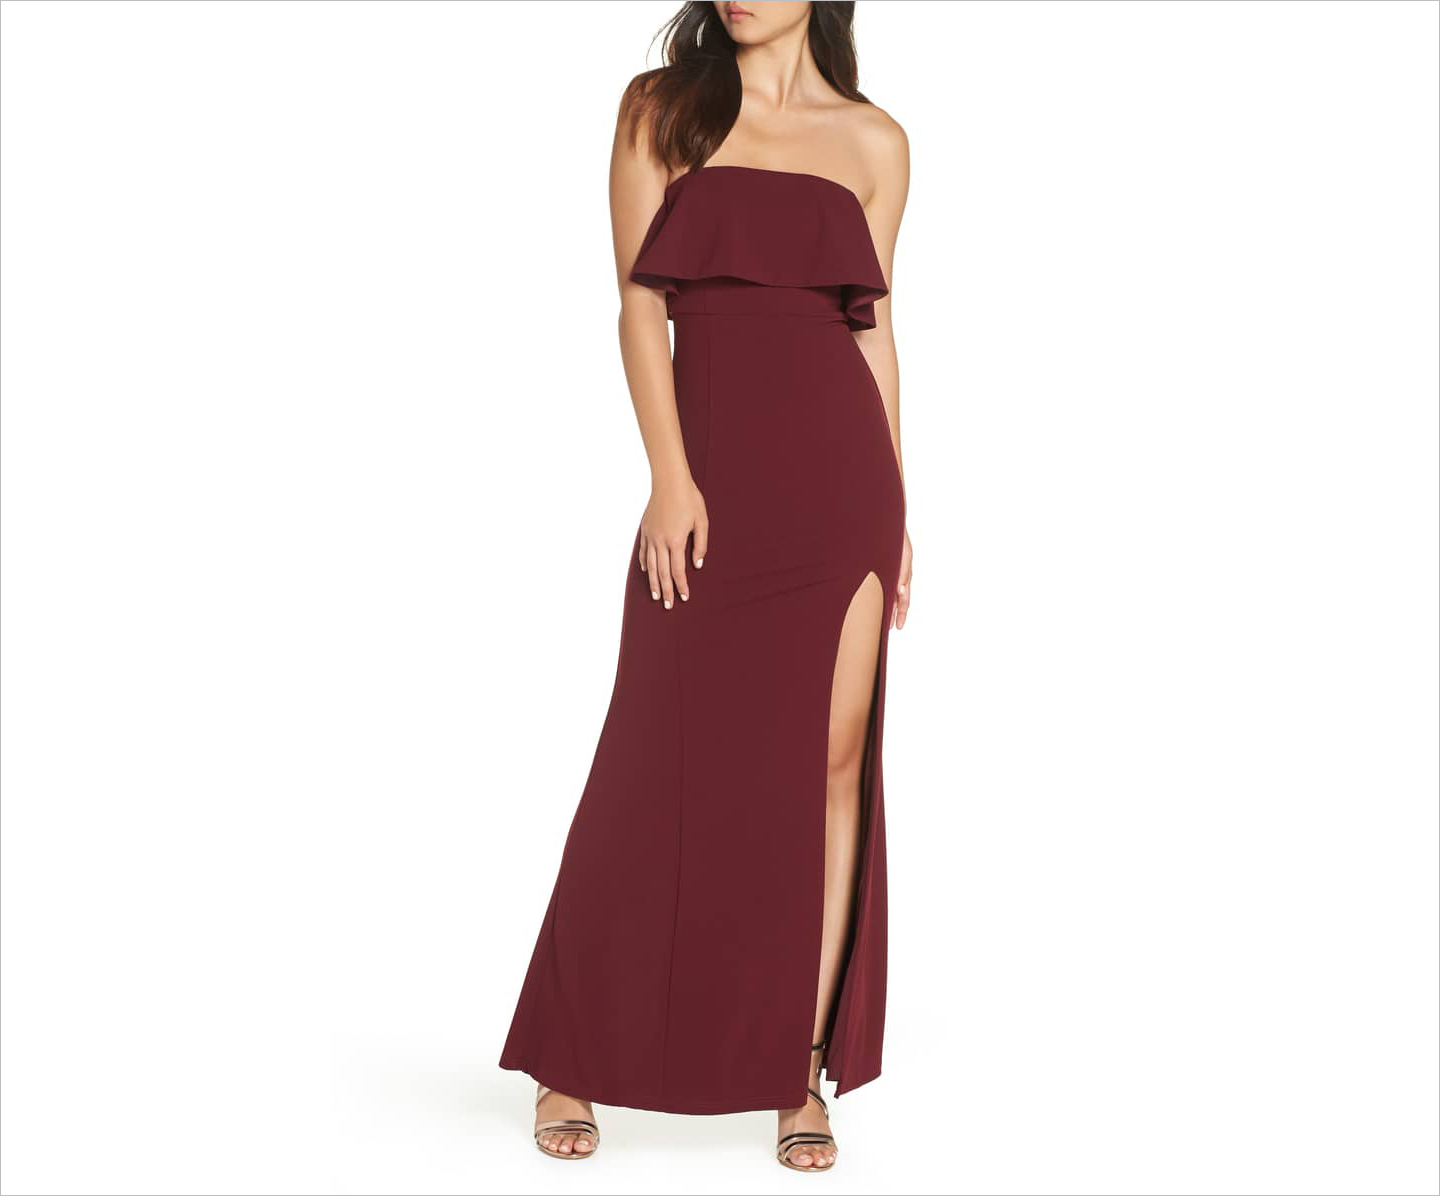 off the shoulder maxi gown burgundy wedding guest dress ideas lulus